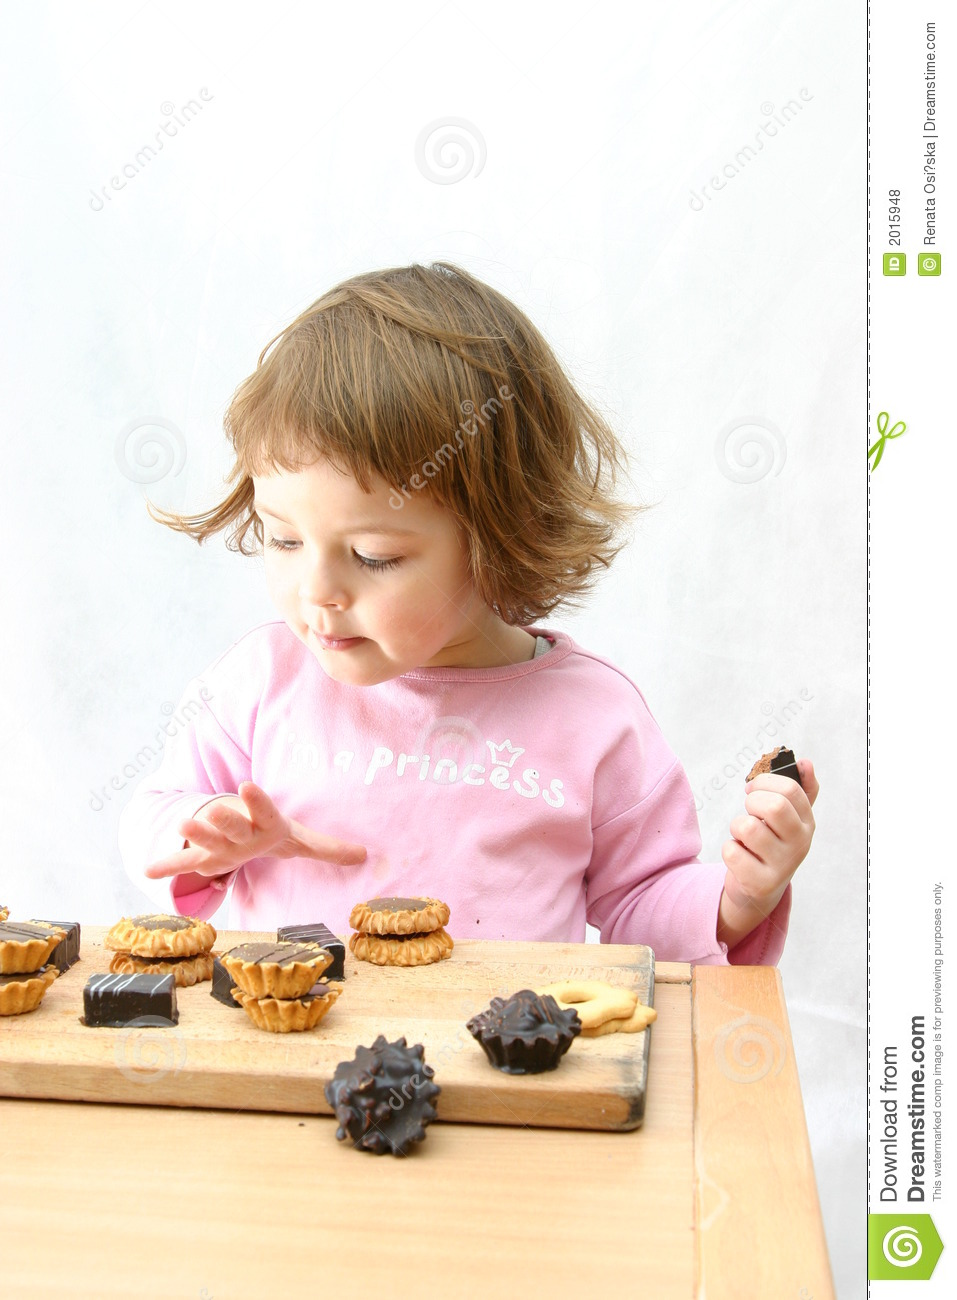 Eating Chocolate Cake Images : Eating Chocolate Cakes Royalty Free Stock Photos - Image ...